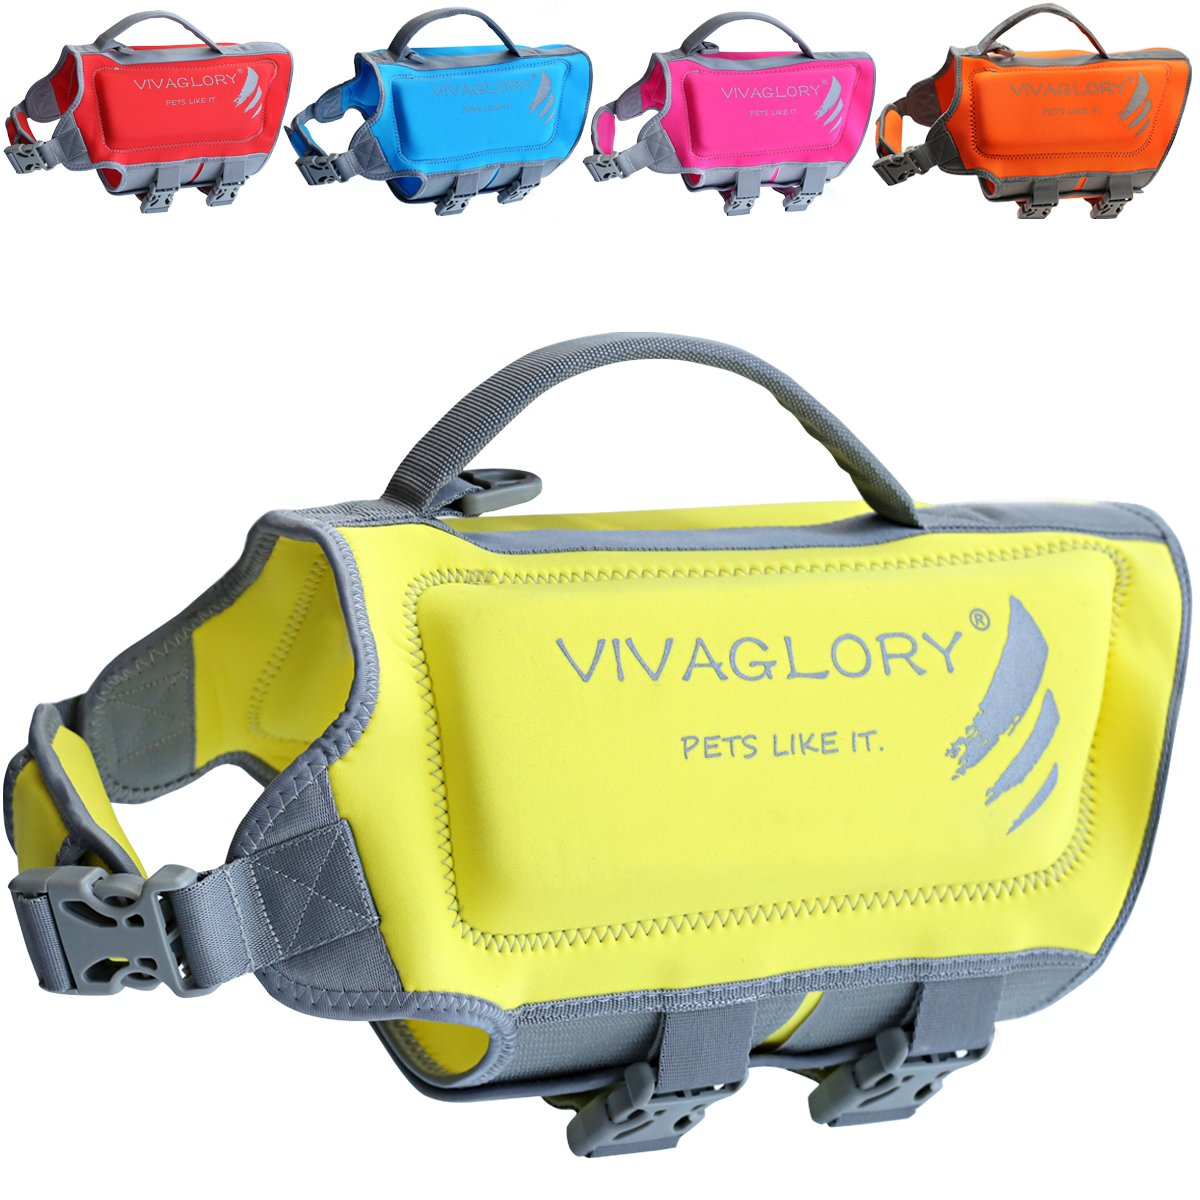 Vivaglory Skin-Friendly Dog Life Vest, Neoprene Life Jacket for Dogs with Superior Buoyancy and Rescue Handle, Lemon Yellow, Small